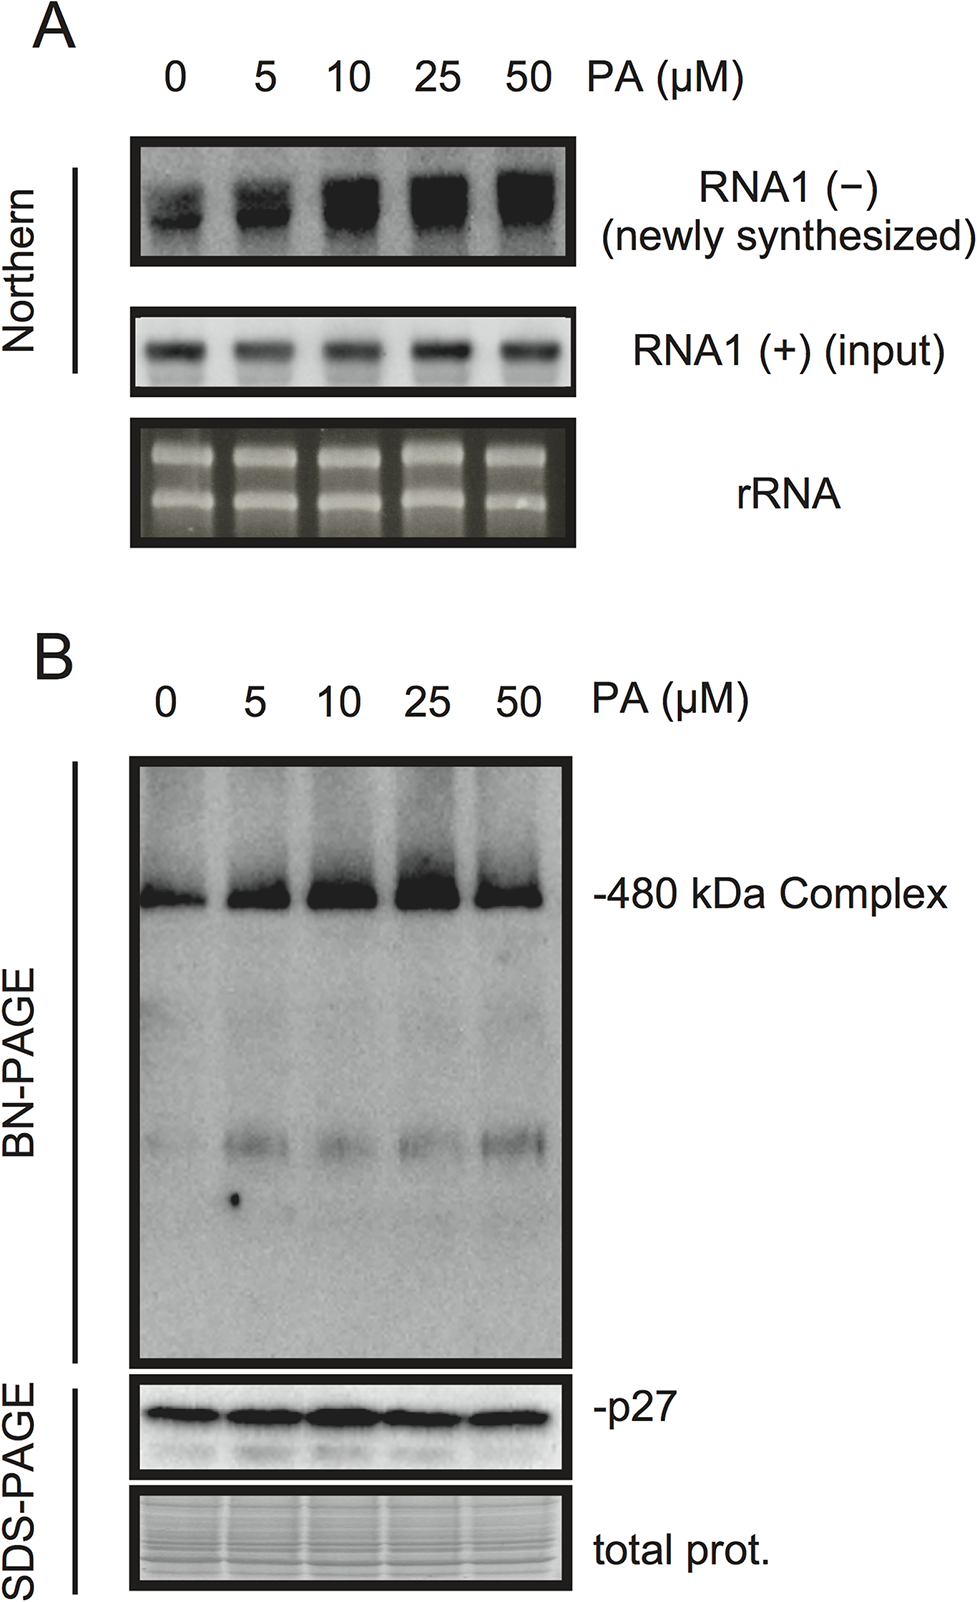 PA enhances accumulation of negative-strand RNA1 and the 480-kDa replicase complex in BYL.